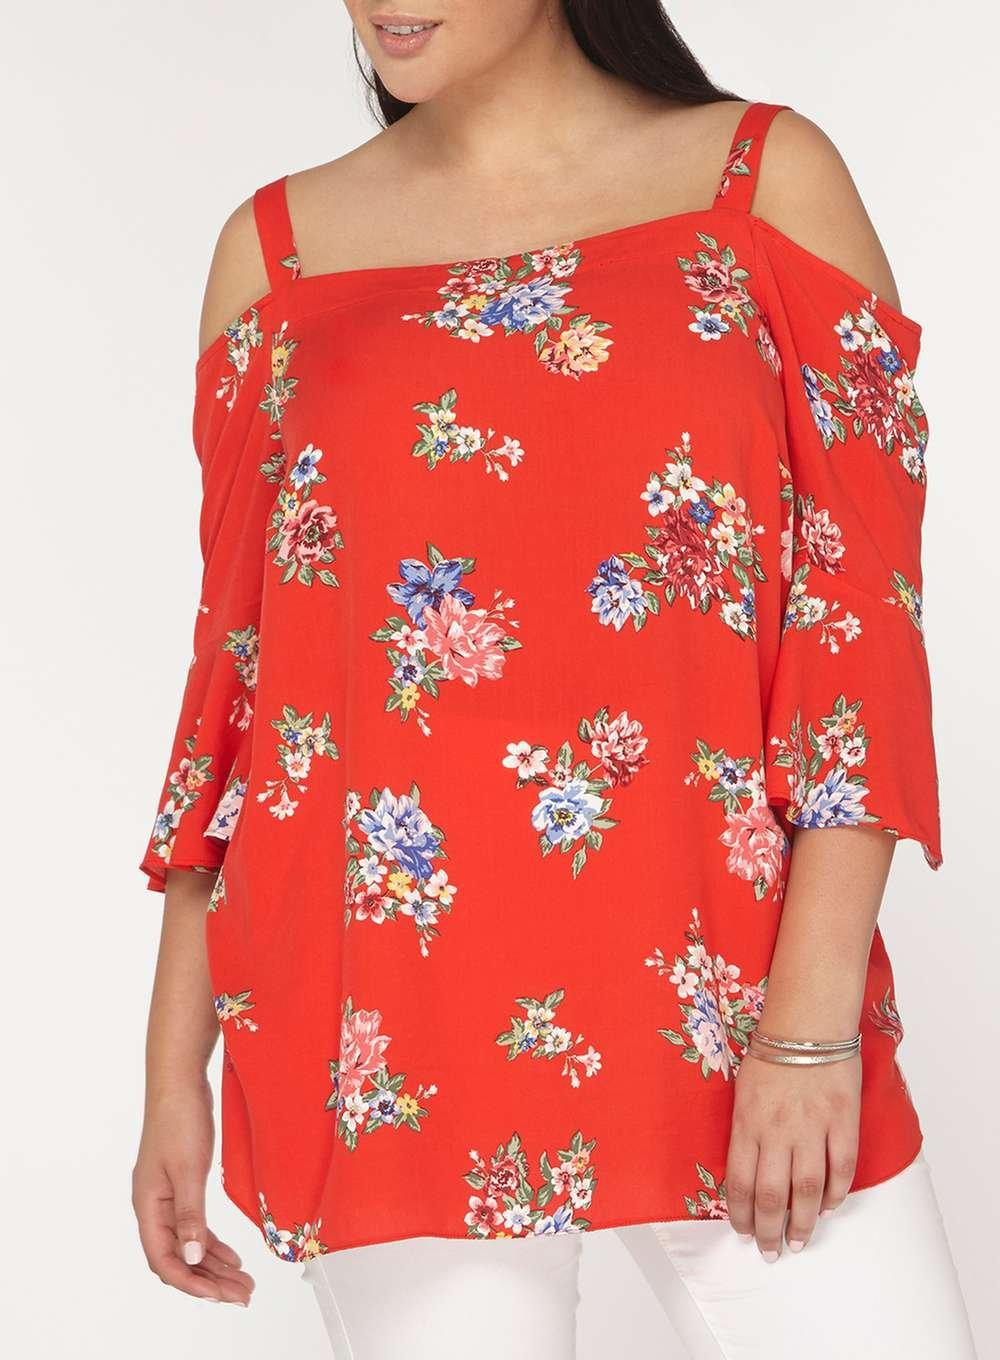 9a0ab0d9dd82d9 Lyst - Dorothy Perkins Dp Curve Red Floral Print Bardot Top in Red